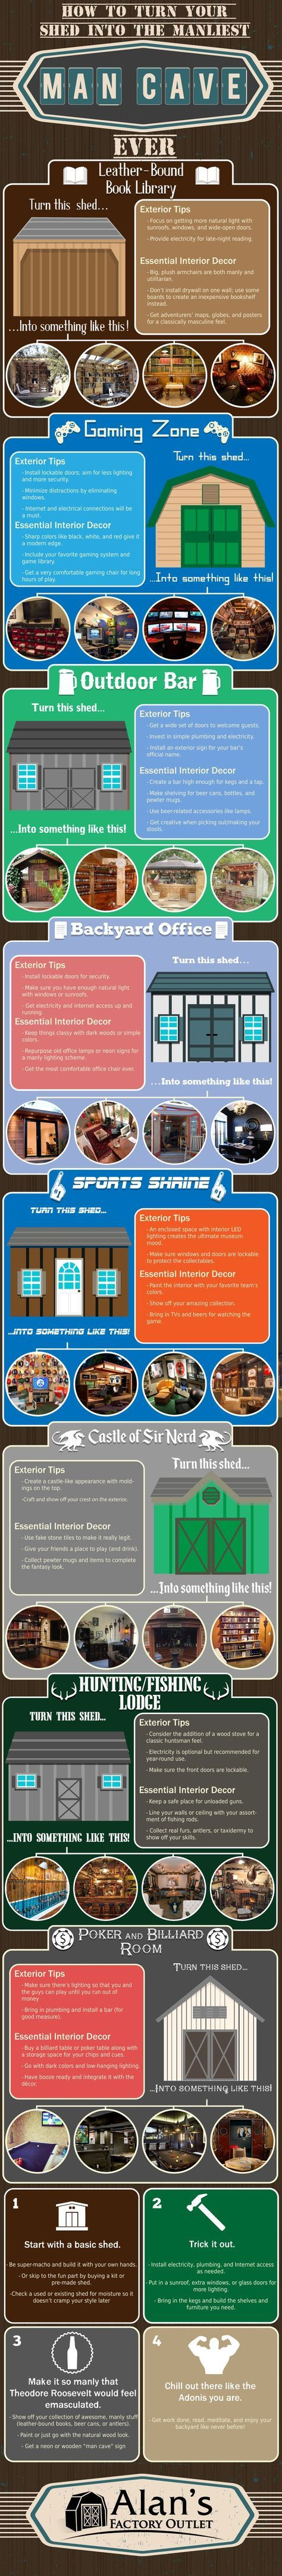 Turn Your Shed Into The Perfect Man Cave #Infographic #HomeImprovement… http://www.mancavegenius.org/category/man-cave-design/